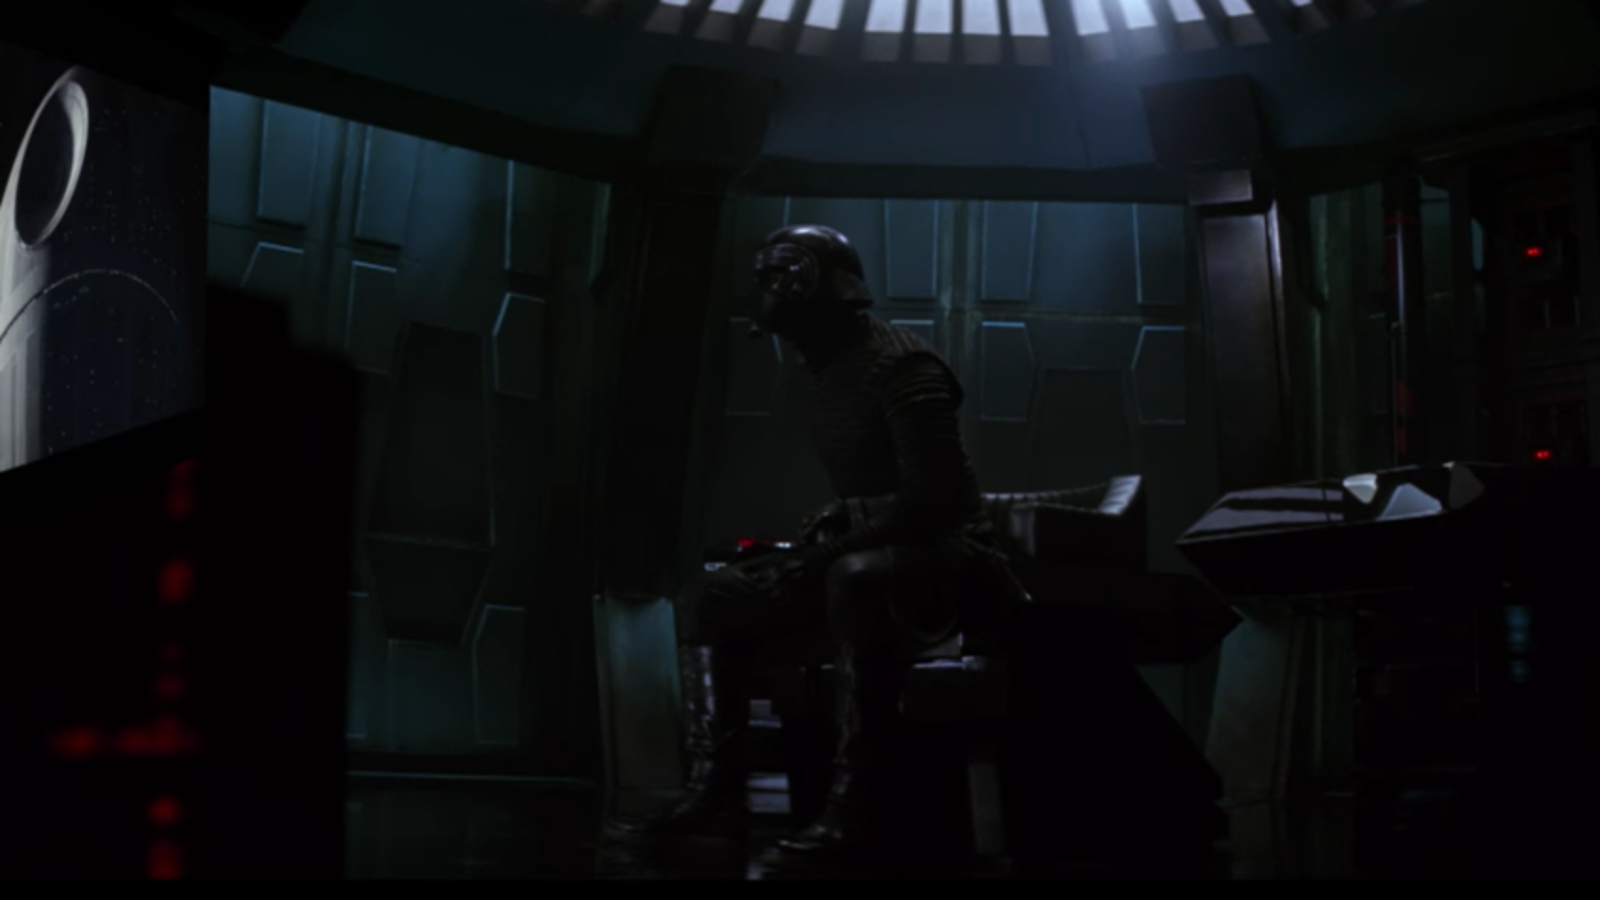 Kylo Ren Rips on Death Star in New Rogue One Trailer Reaction